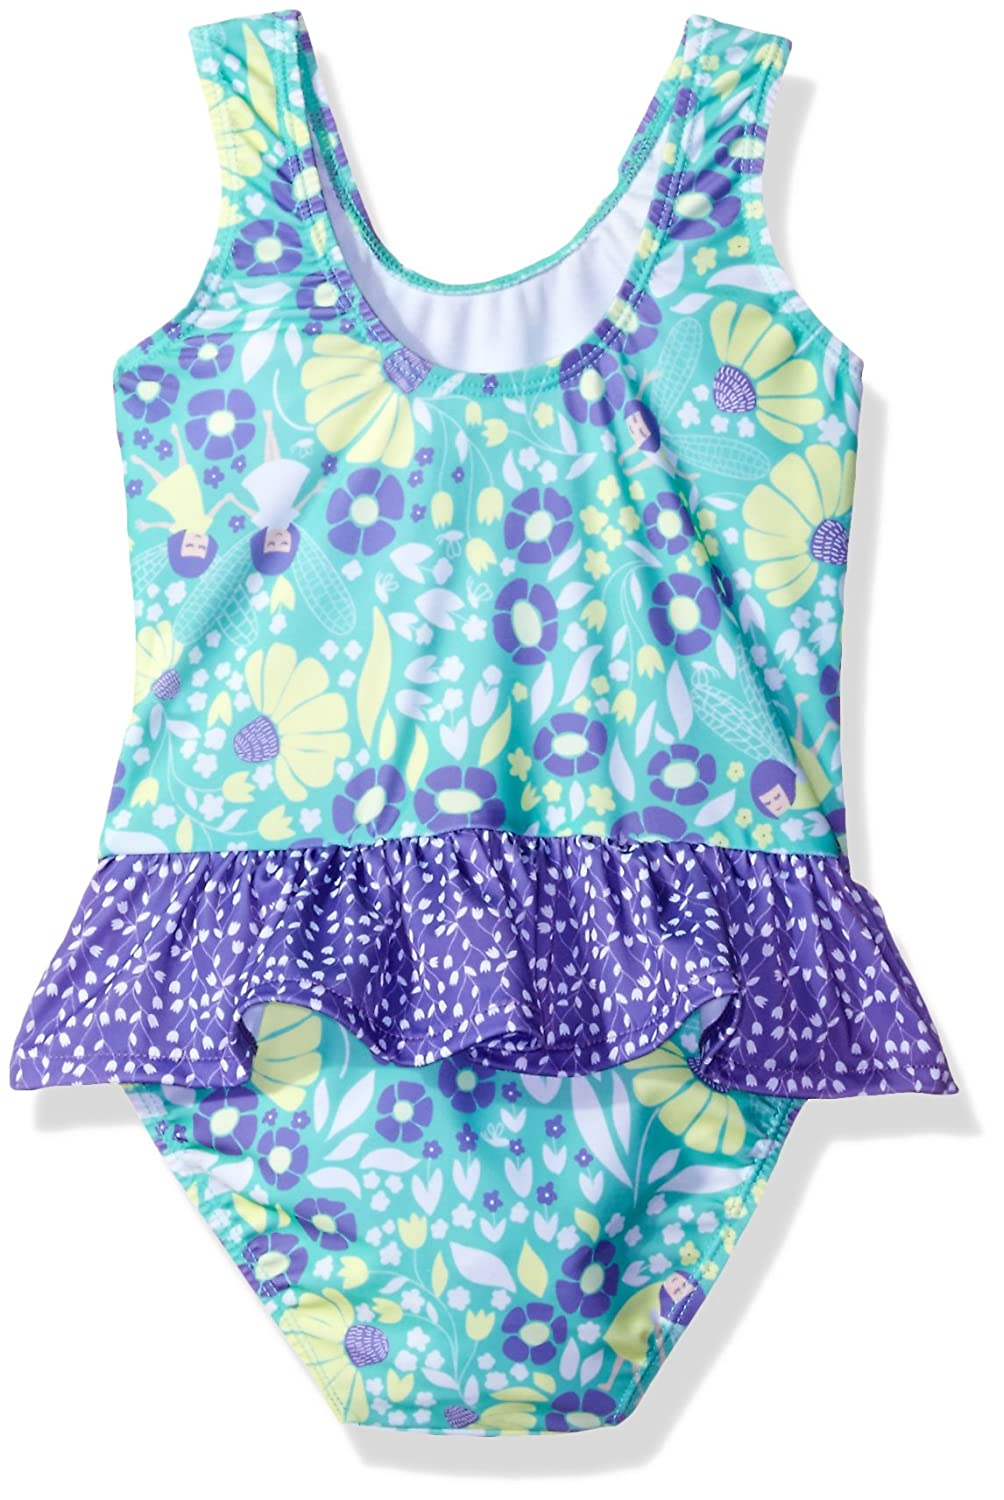 Serena Contrast Swimsuit with Ruffle Skirt Flap Happy Girls UPF 50